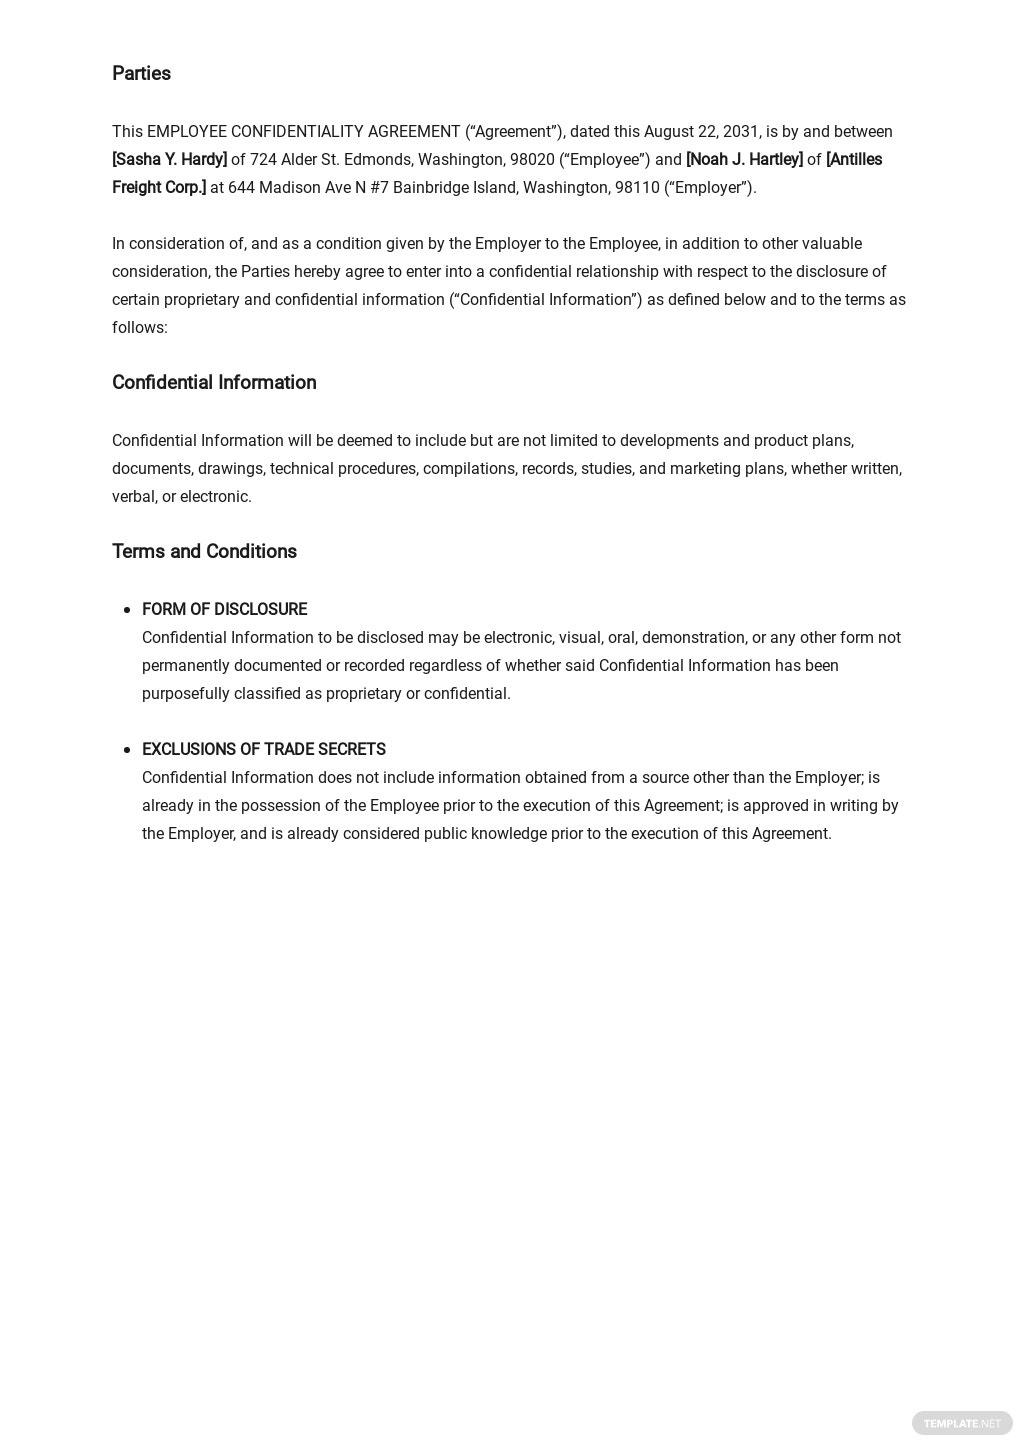 Sample Employee Confidentiality Agreement Template 1.jpe